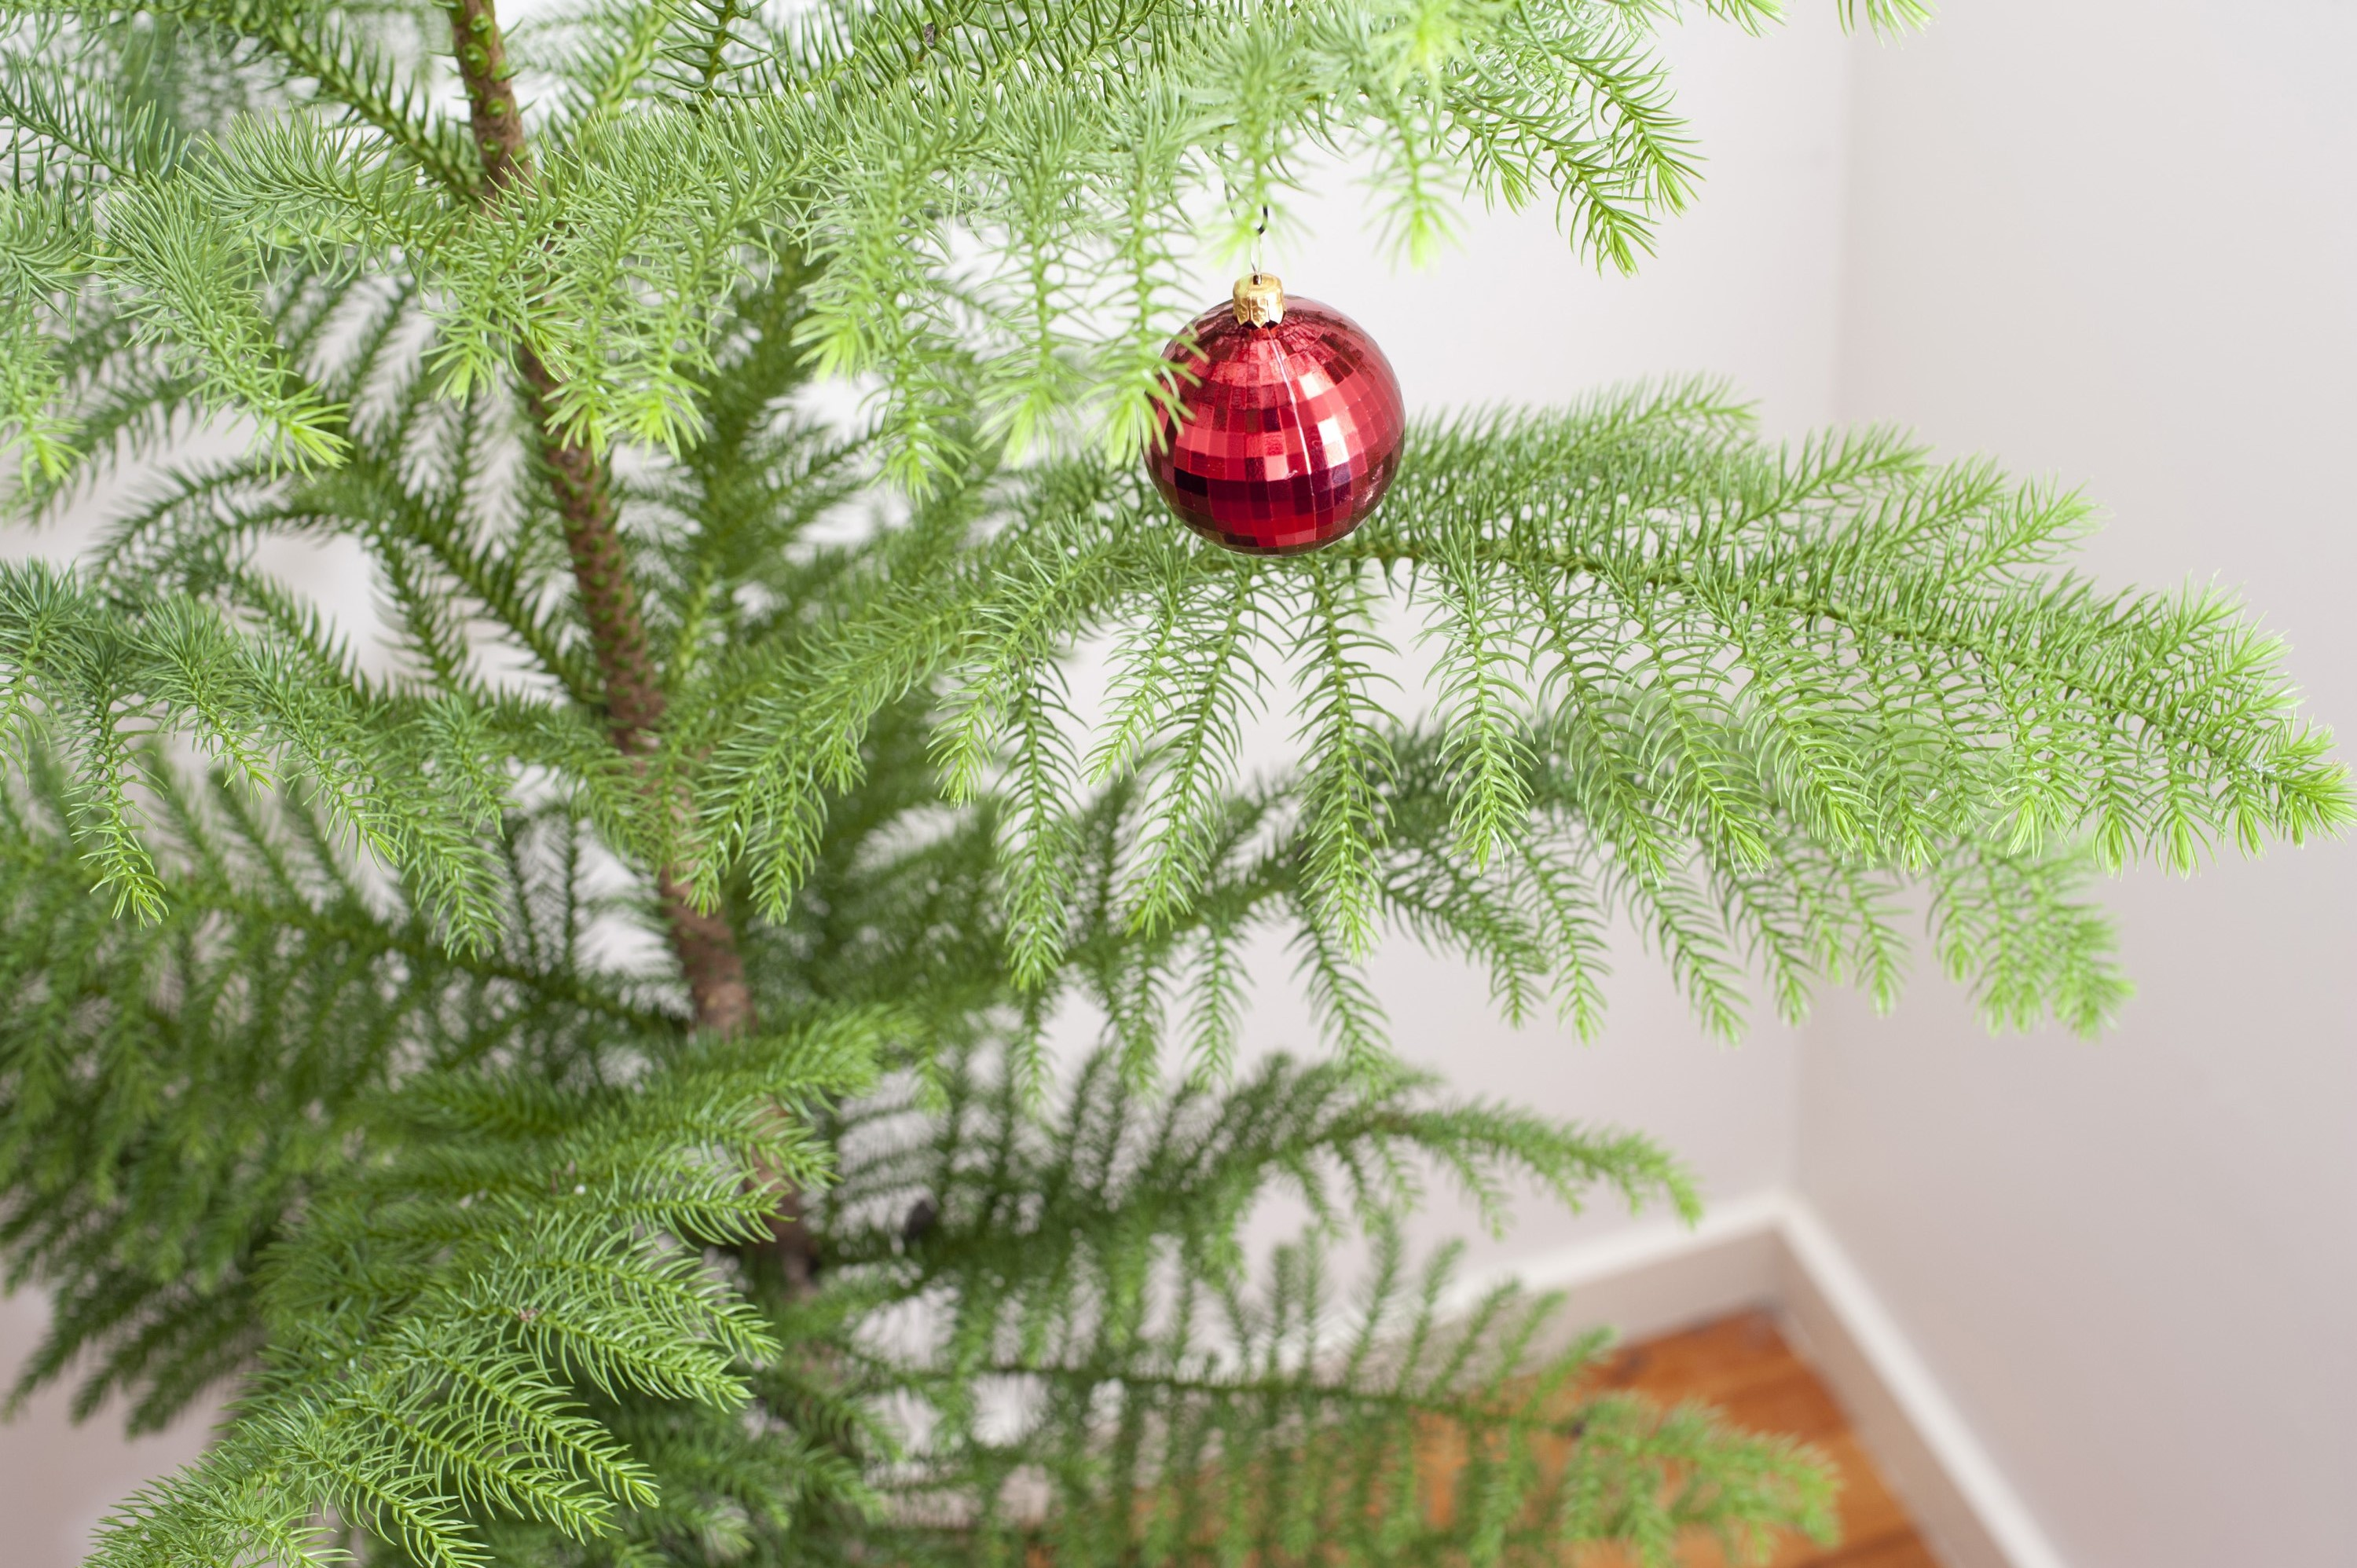 Festive background of a natural pine Christmas tree with a single red bauble hanging from its branches